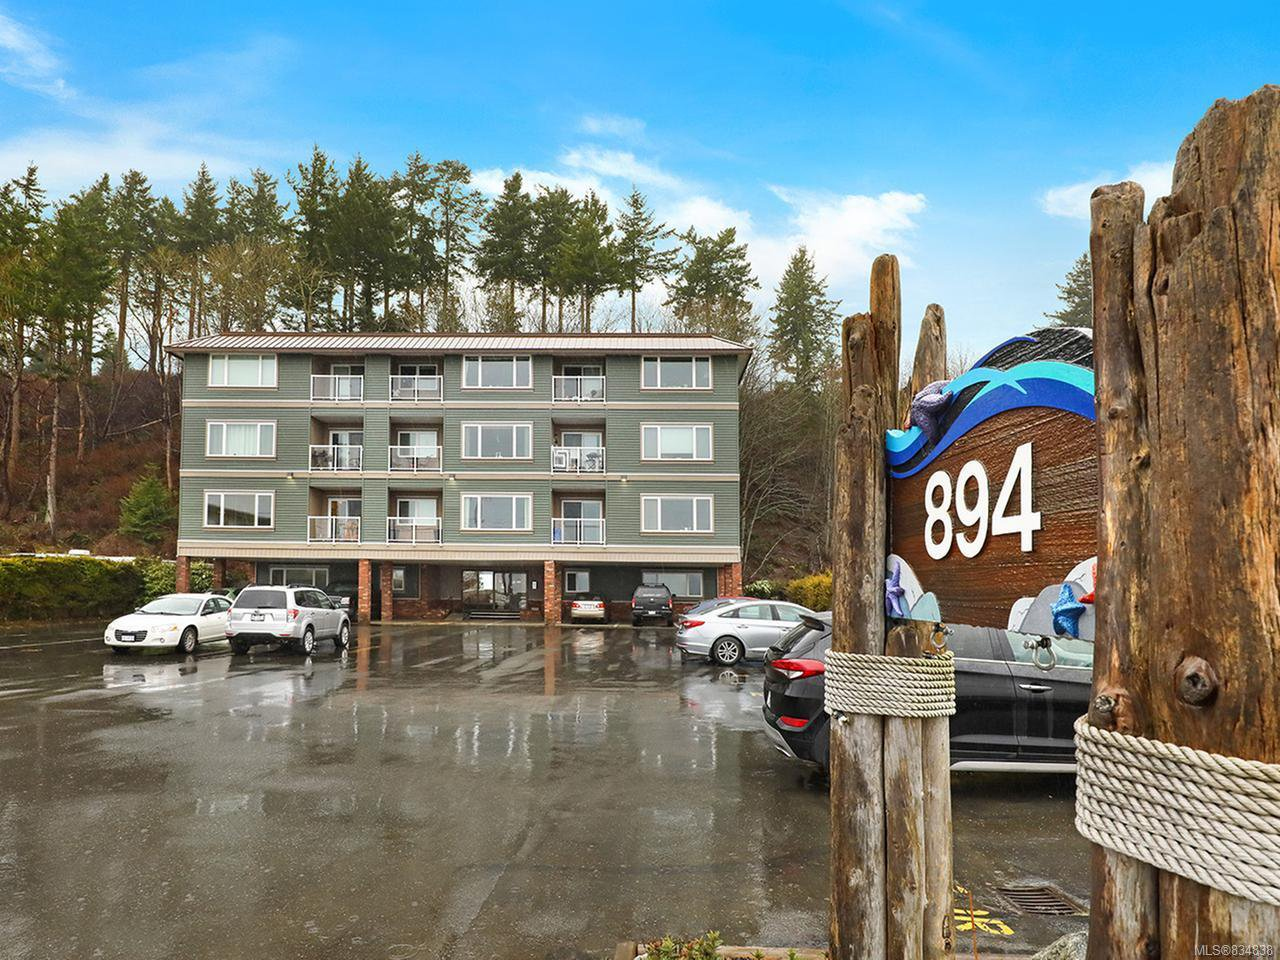 Photo 20: Photos: 301 894 S Island Hwy in CAMPBELL RIVER: CR Campbell River Central Condo for sale (Campbell River)  : MLS®# 834838